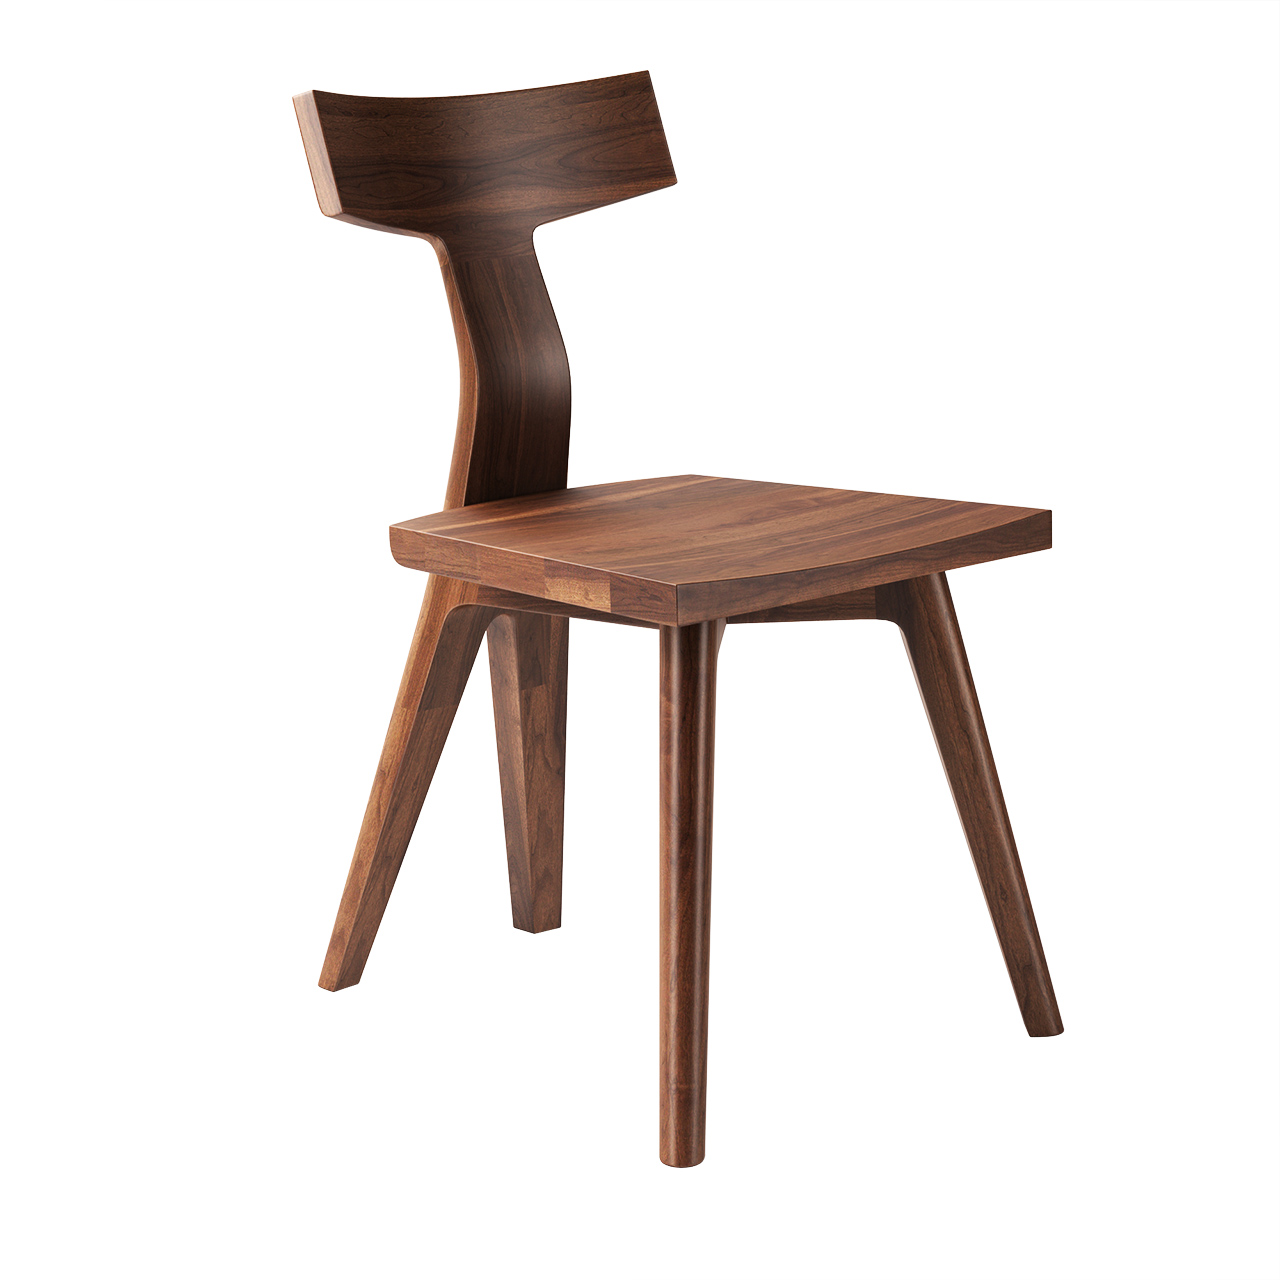 344 Fin Dining Chair by De La Espada